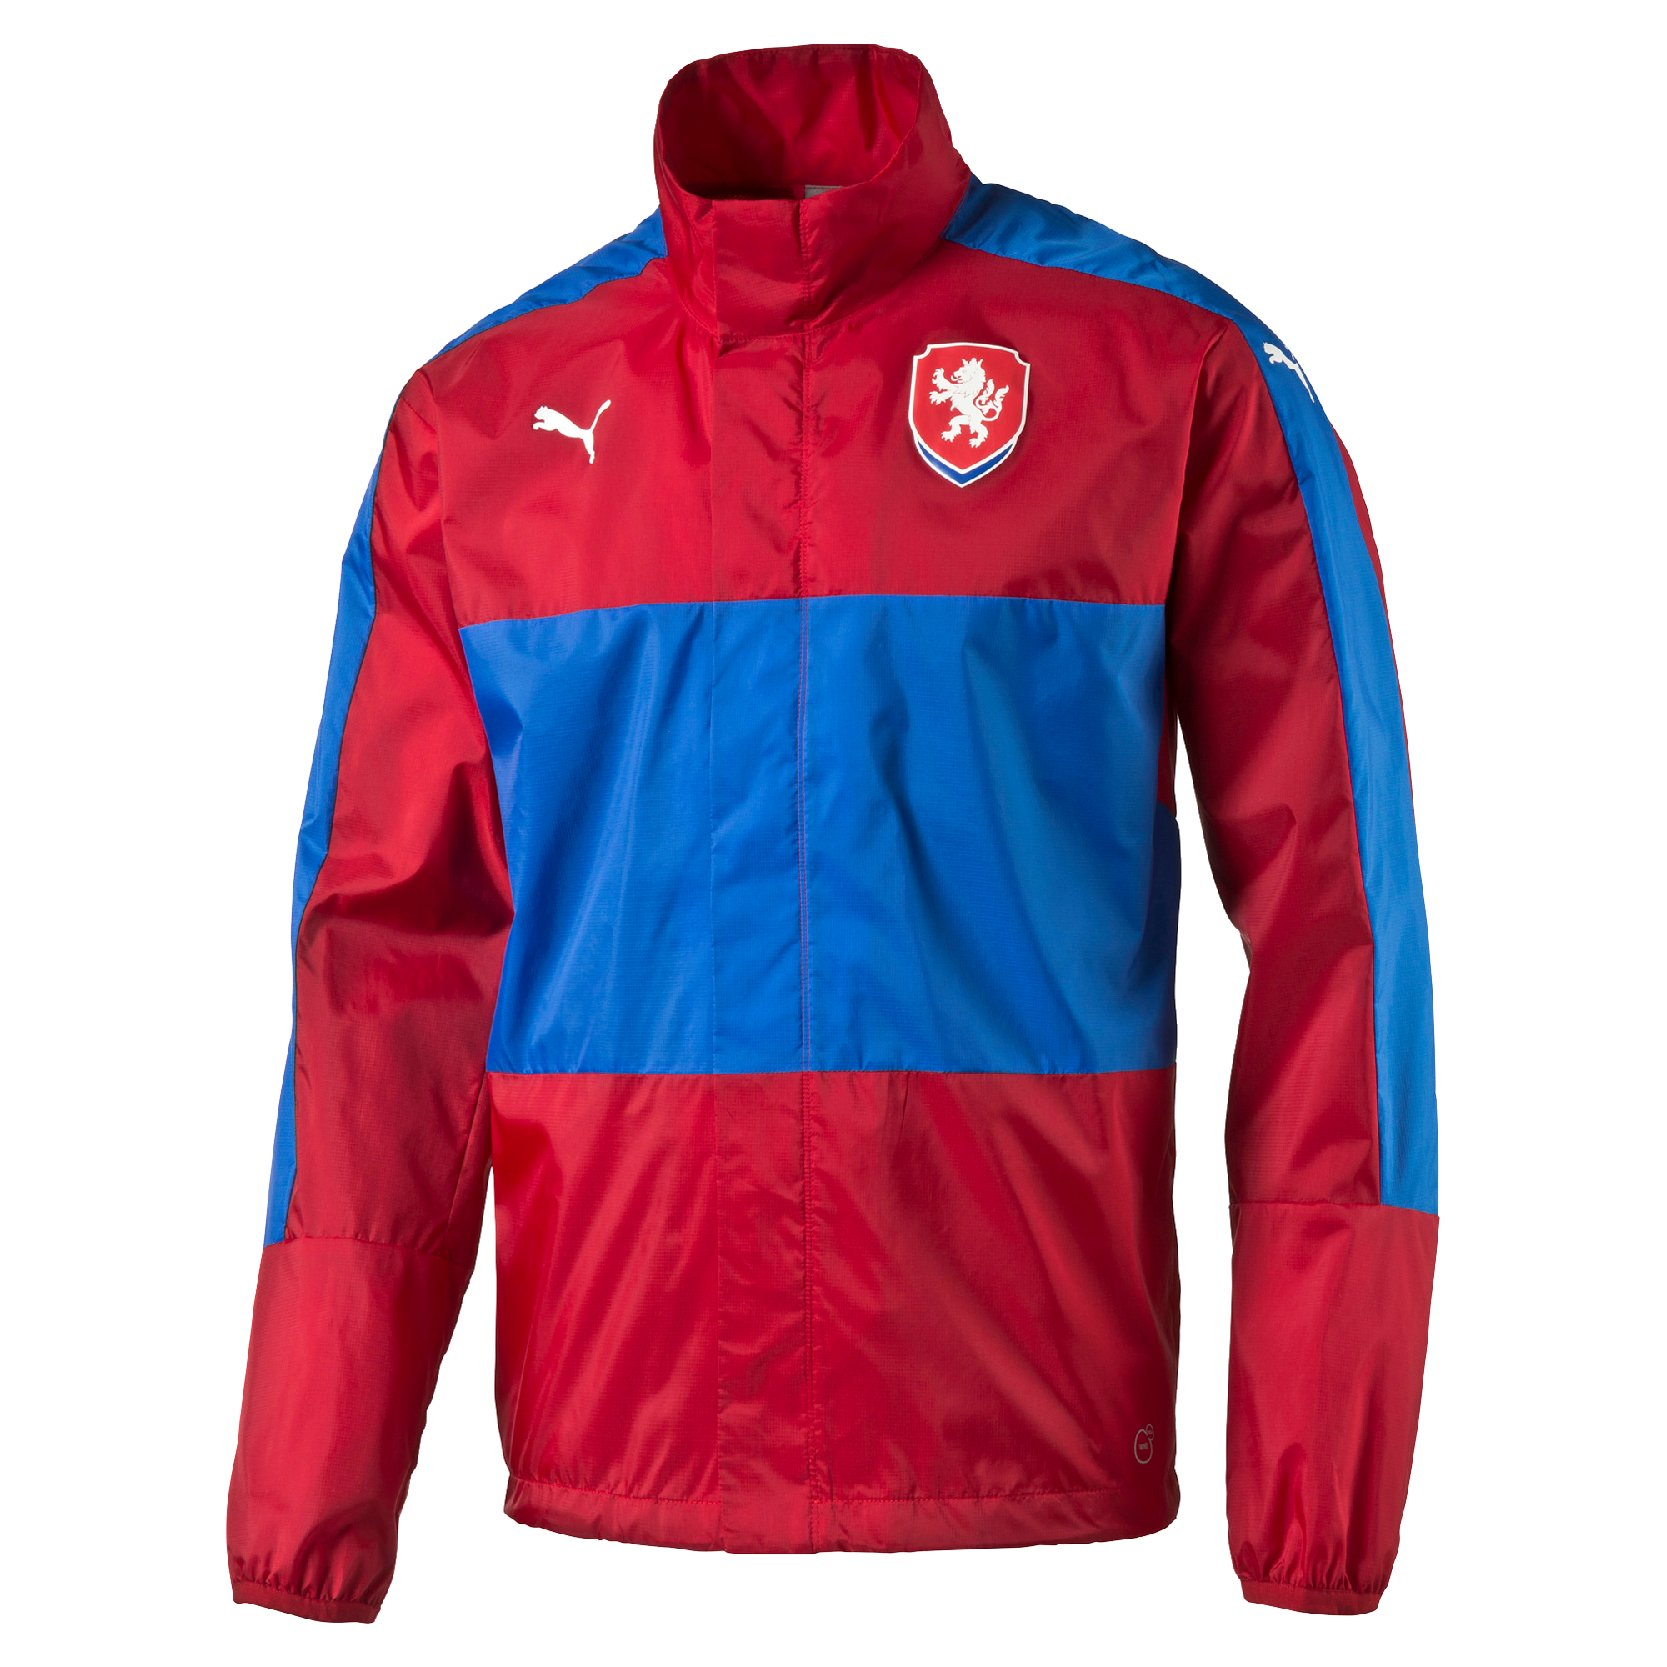 Bunda Puma Czech Republic Lightweight Rain Jacket c